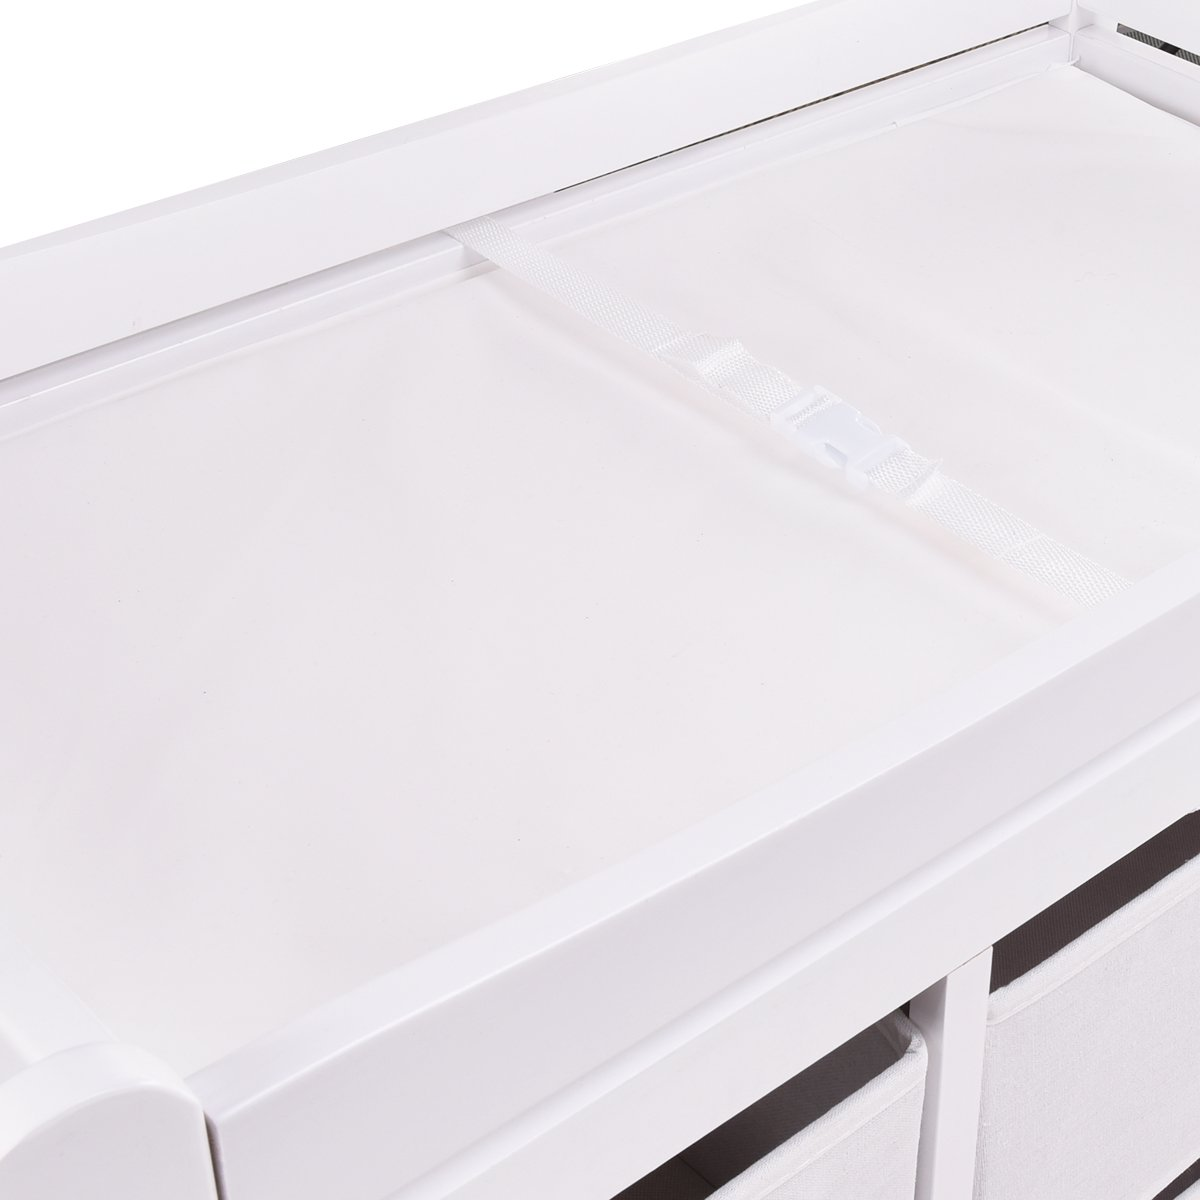 Costzon Baby Changing Table Infant Diaper Nursery Station w/6 Basket Storage Drawers (White) by Costzon (Image #7)